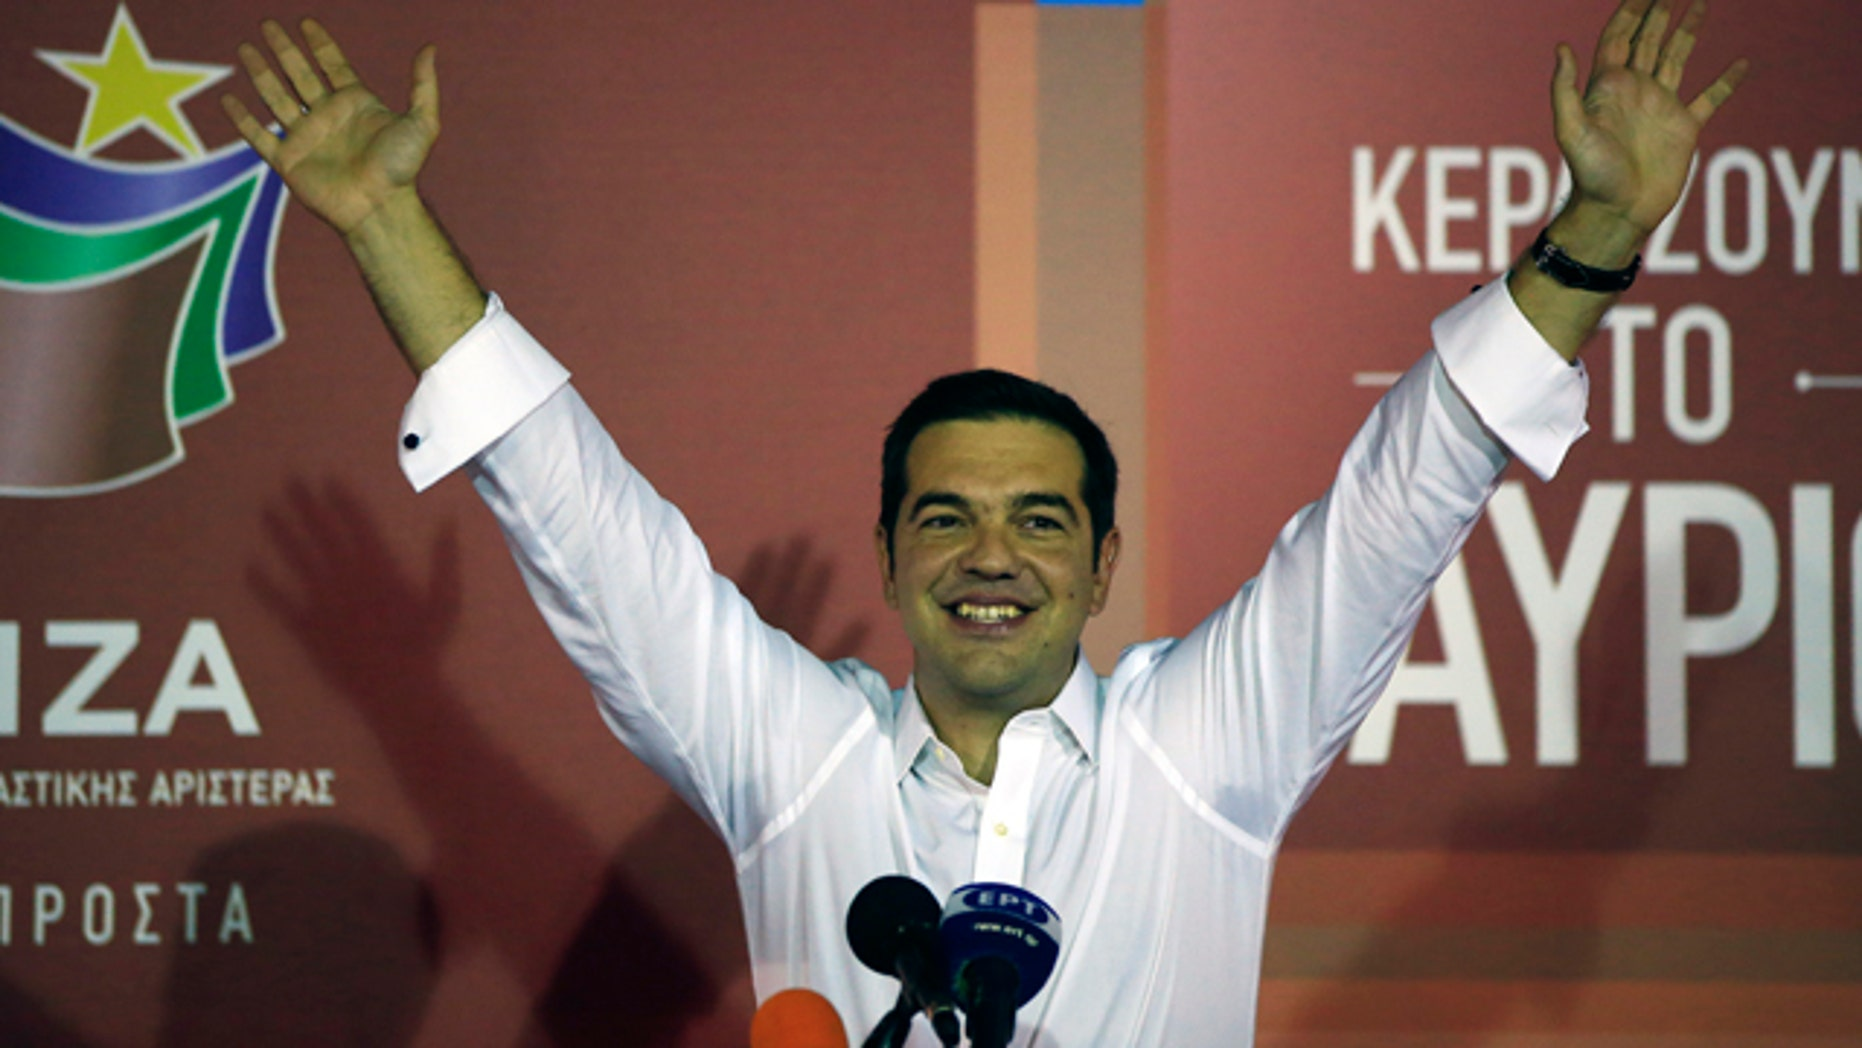 Sept. 20, 2015: Alexis Tsipras the leader of left-wing Syriza party waves to his supporters after the election results at the party's main electoral center in Athens. (AP Photo/Lefteris Pitarakis)